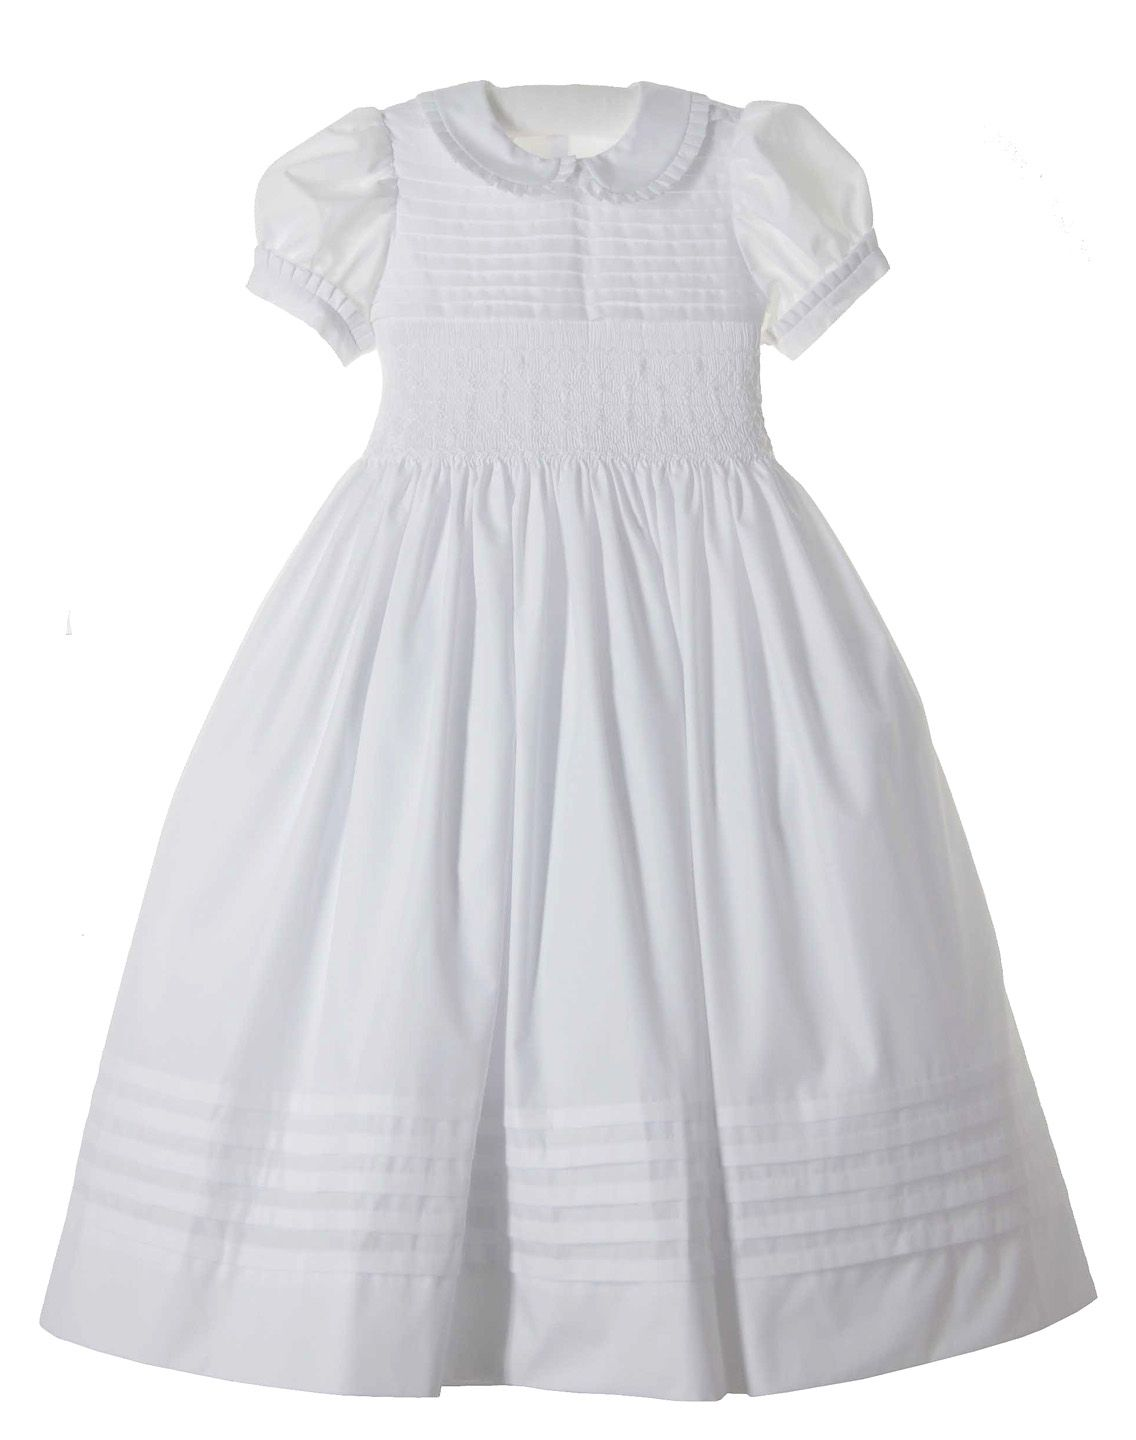 07ef8fa6ca0 NEW Marco   Lizzy White Cotton Batiste Smocked Dress with Pleated Trim